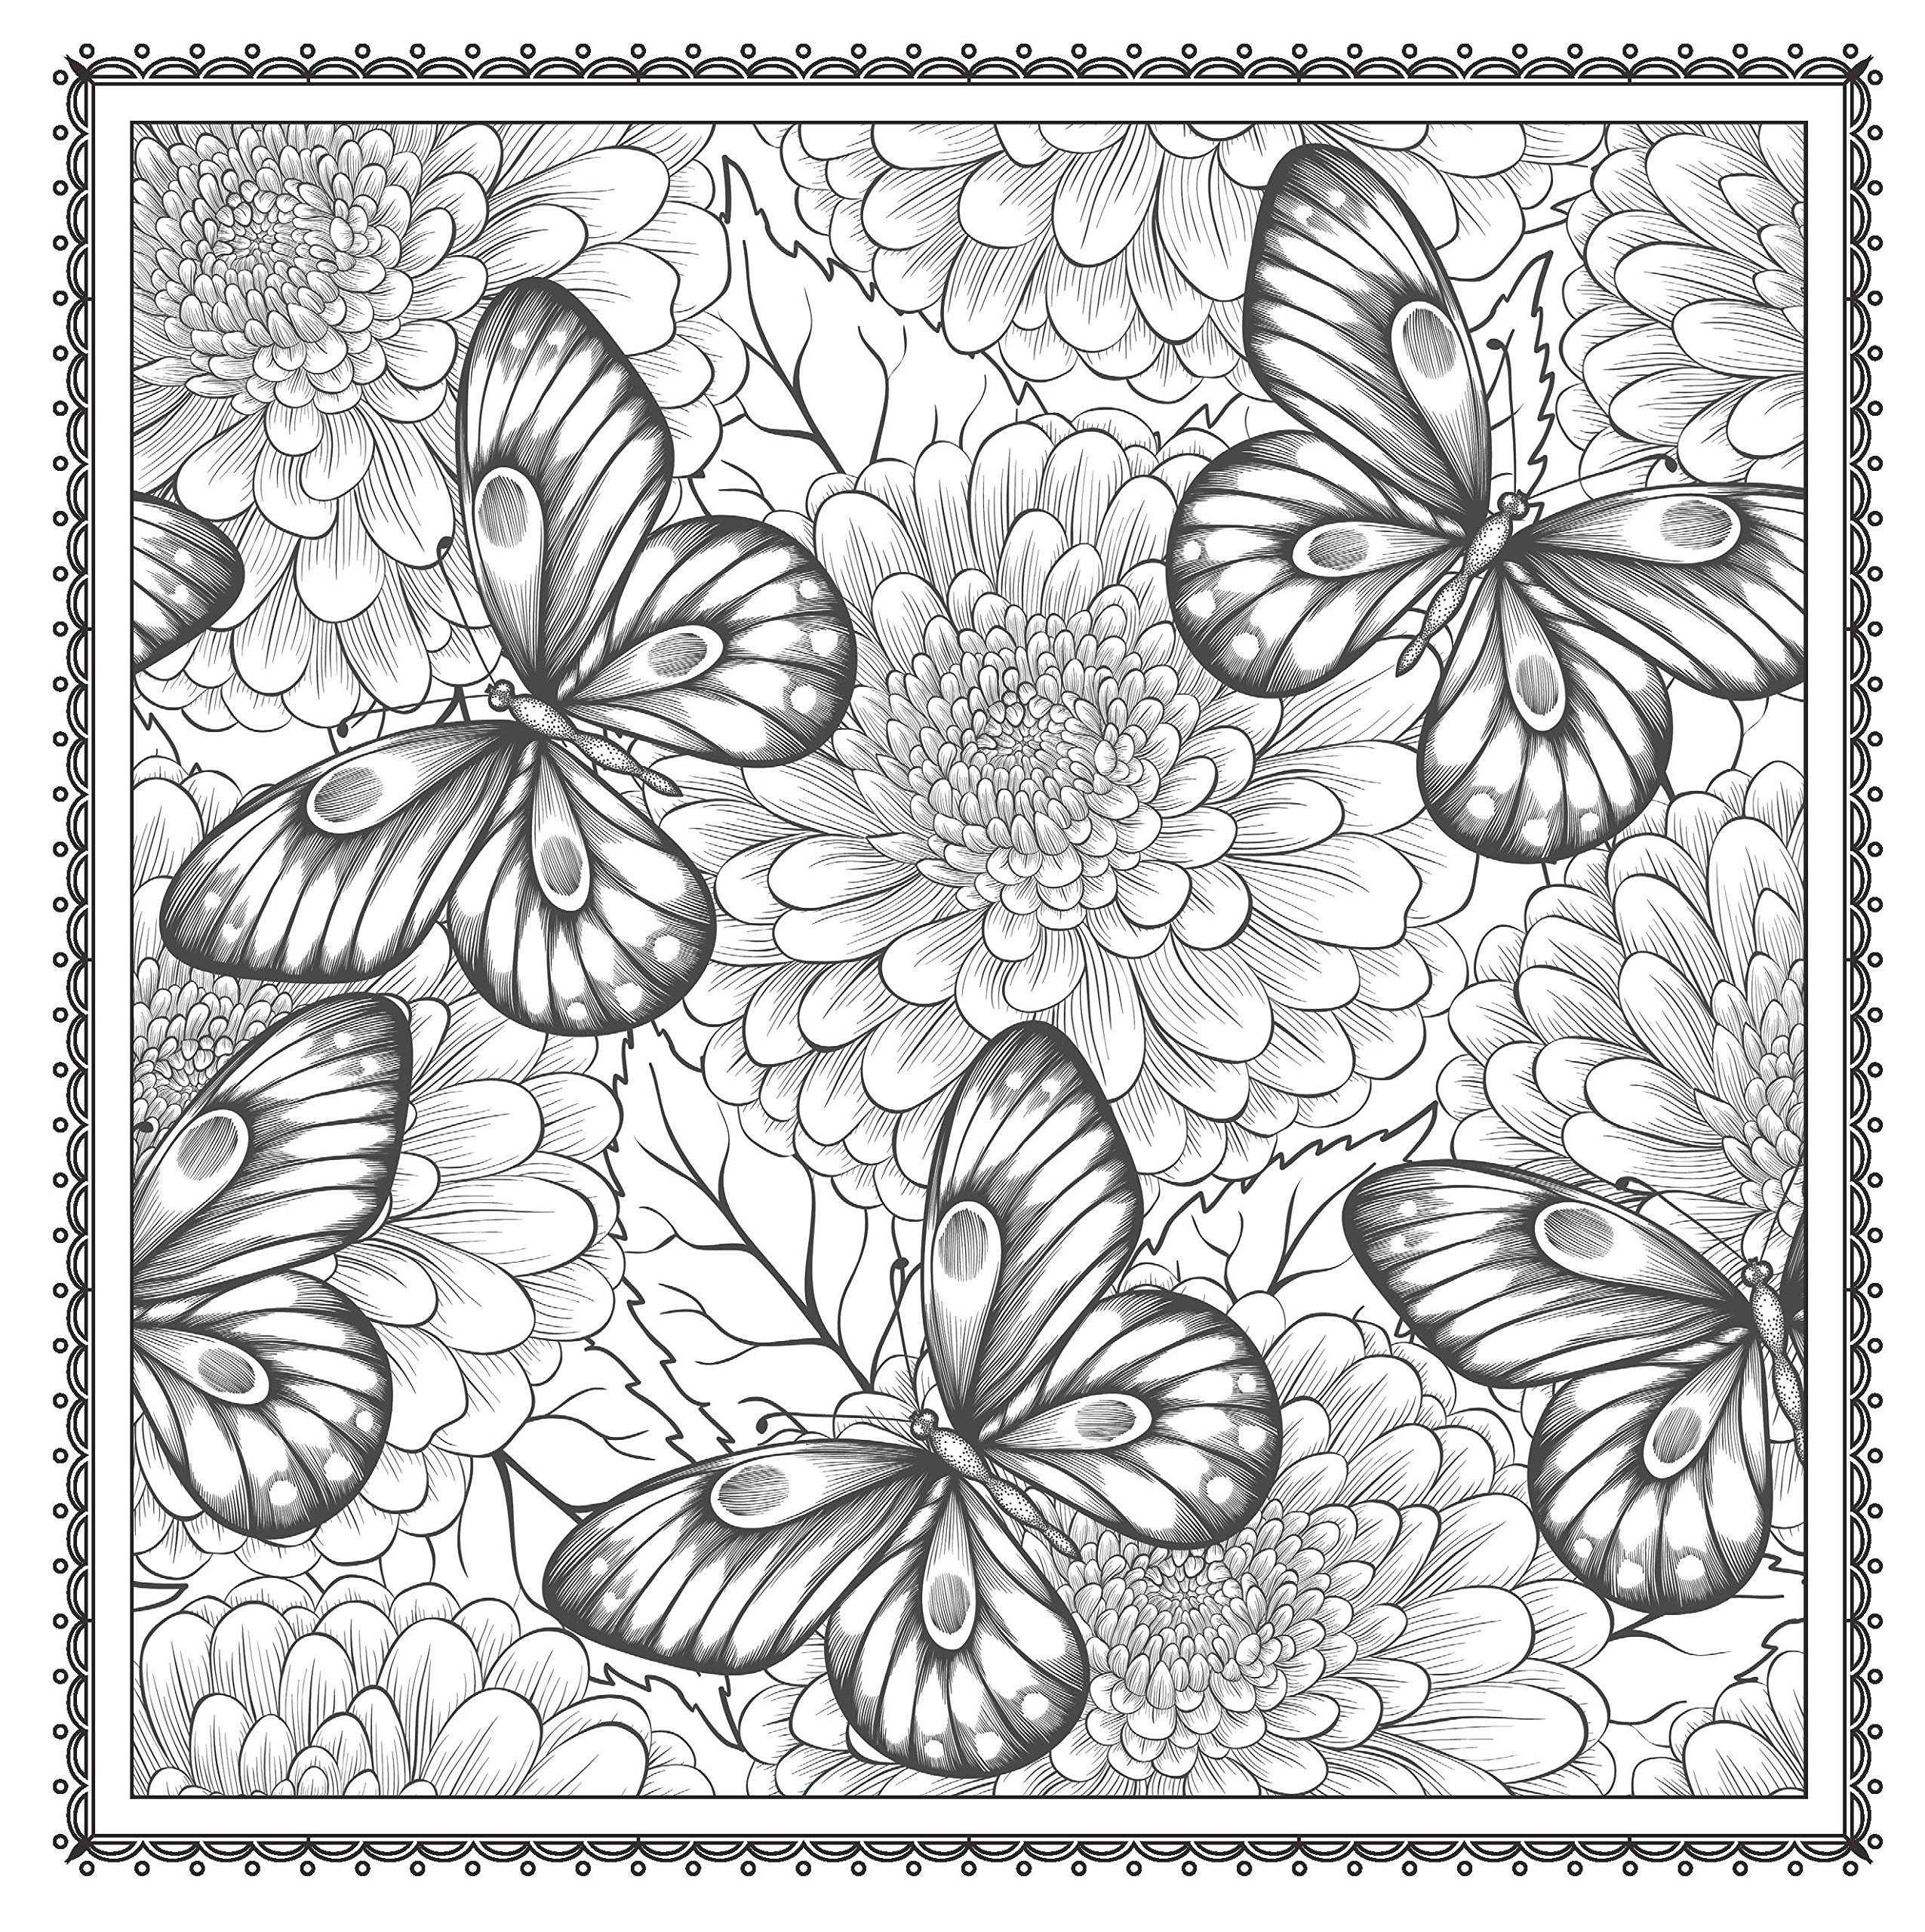 Best ideas about Adult Coloring Books Amazon . Save or Pin Colouring Adults on Pinterest Now.